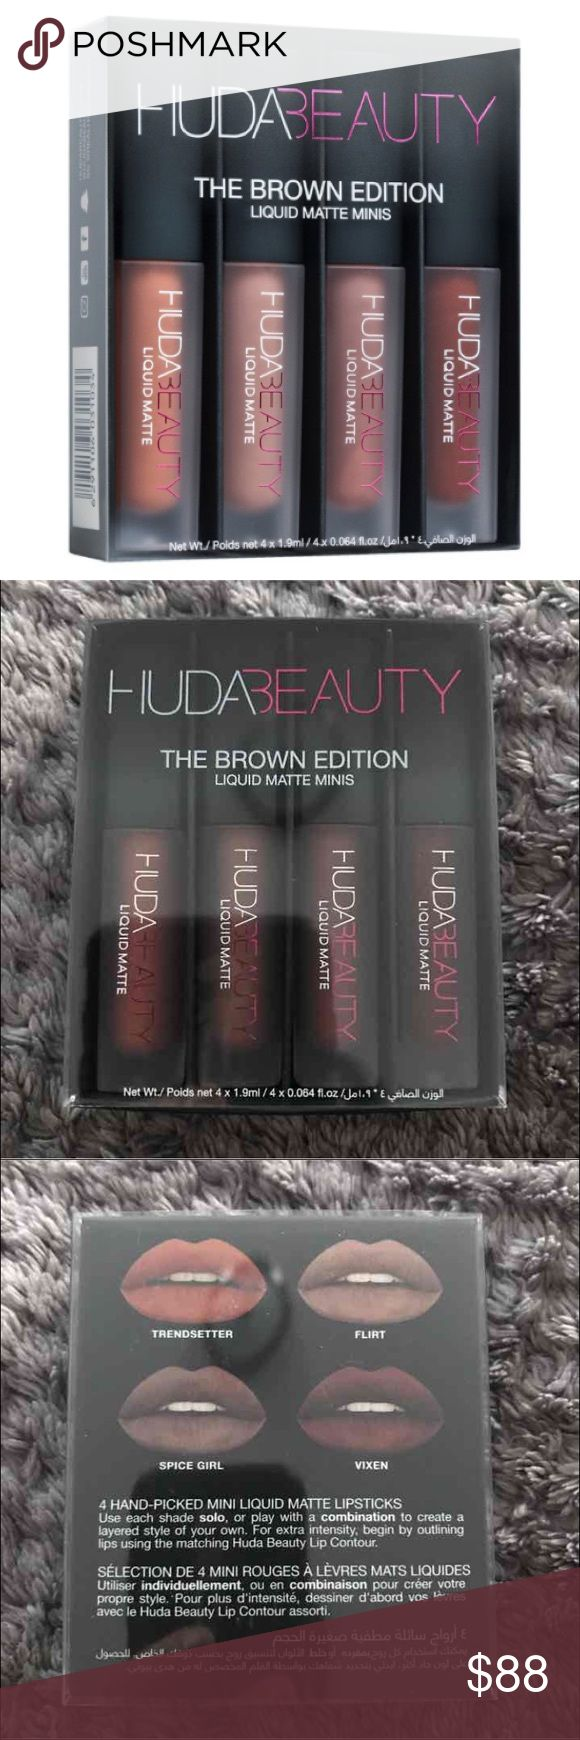 25 Best Ideas About Huda Beauty Lipstick Swatches On -4815